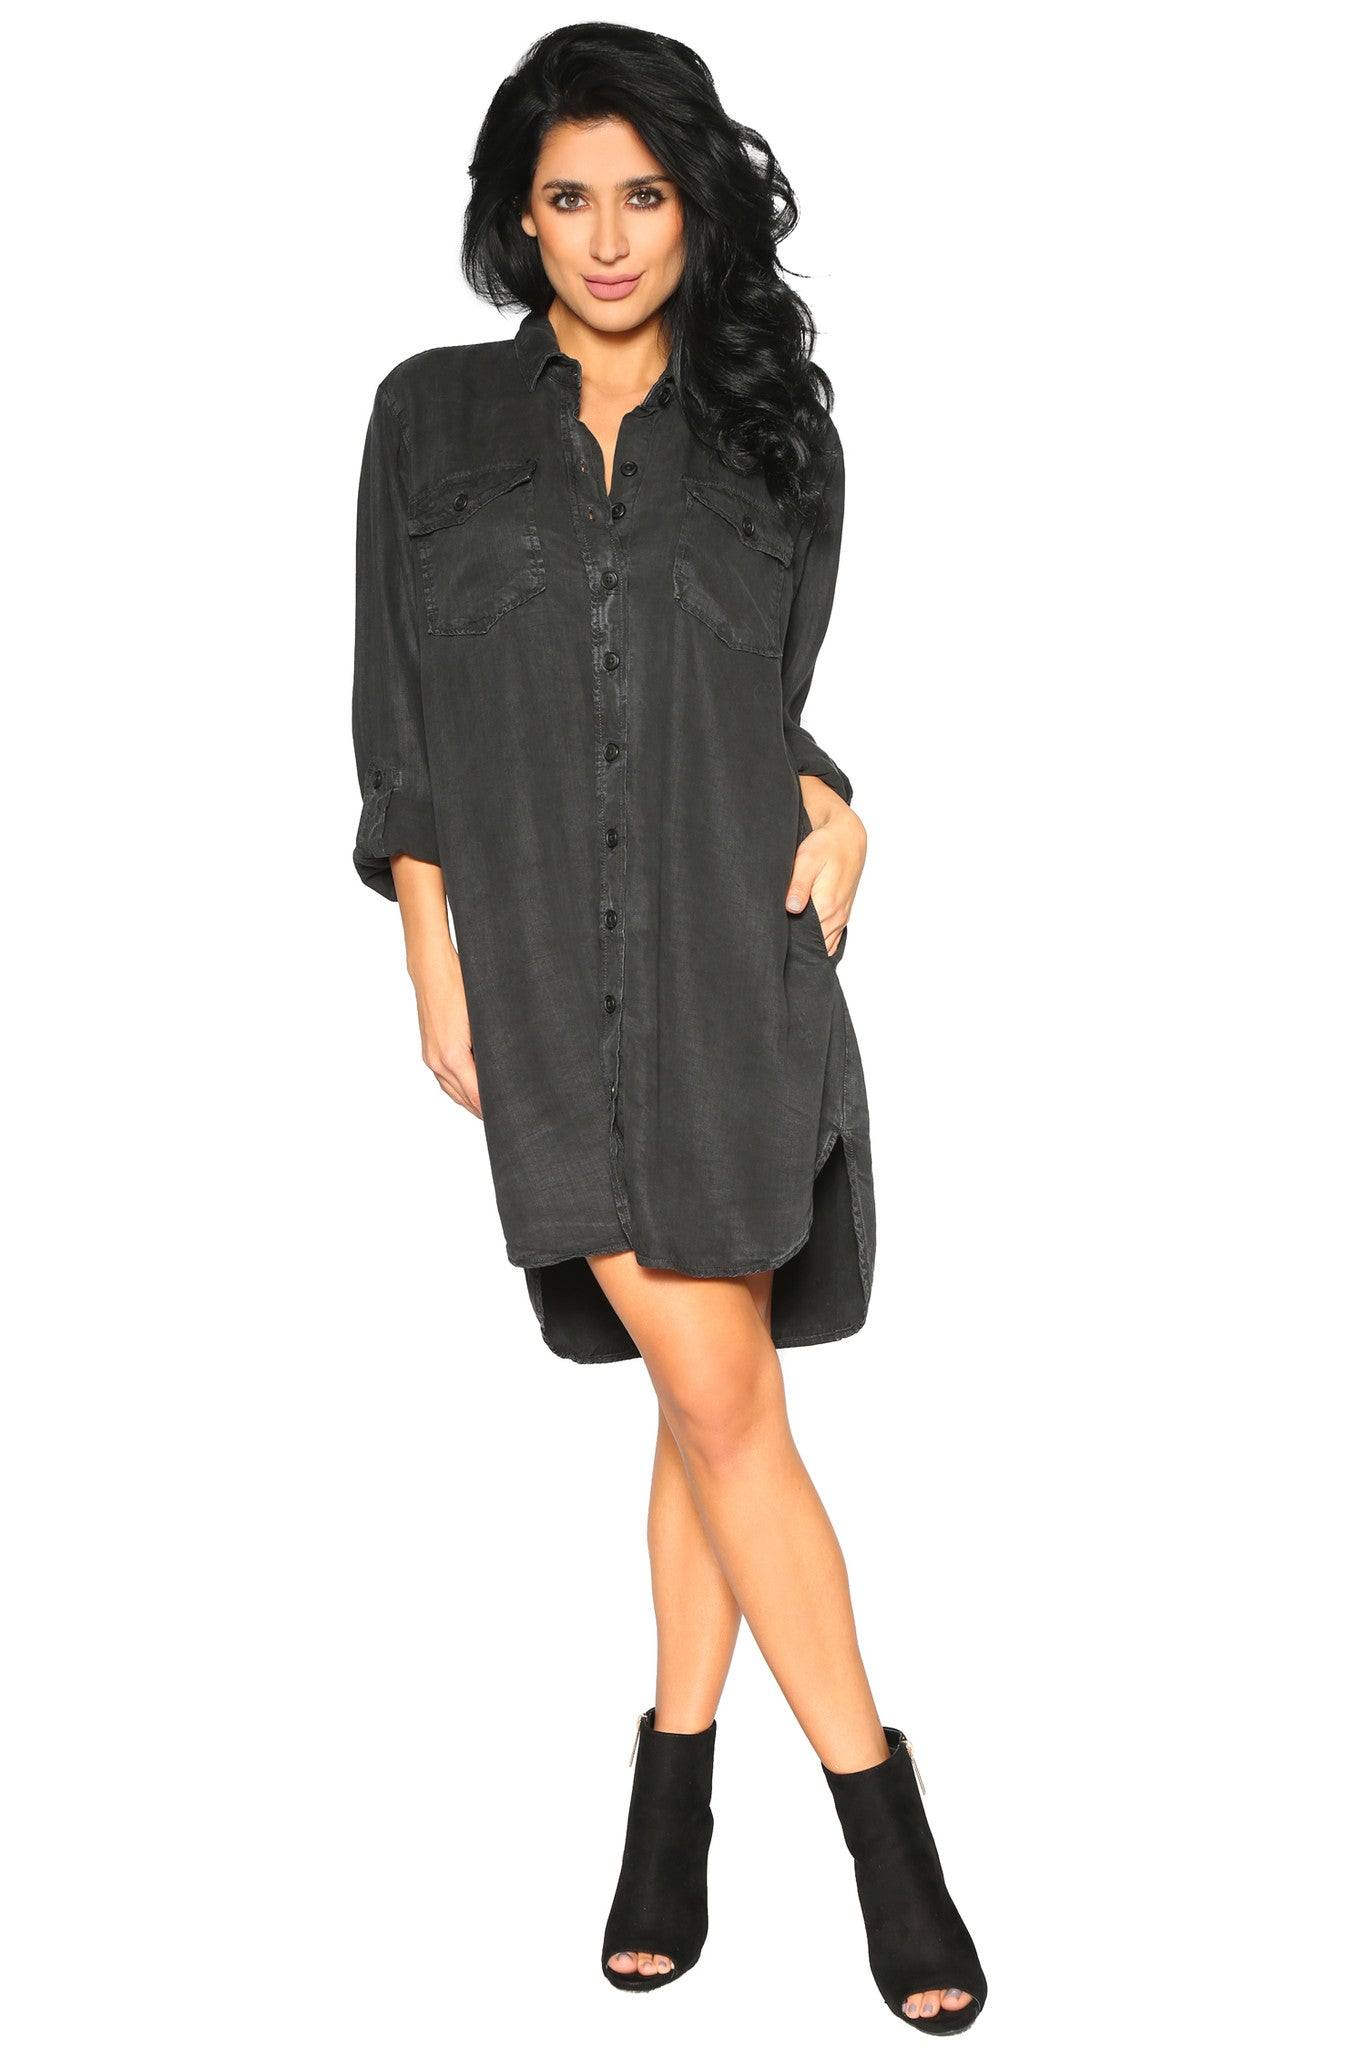 NATASHA SHIRT DRESS - Glam Envy - 1